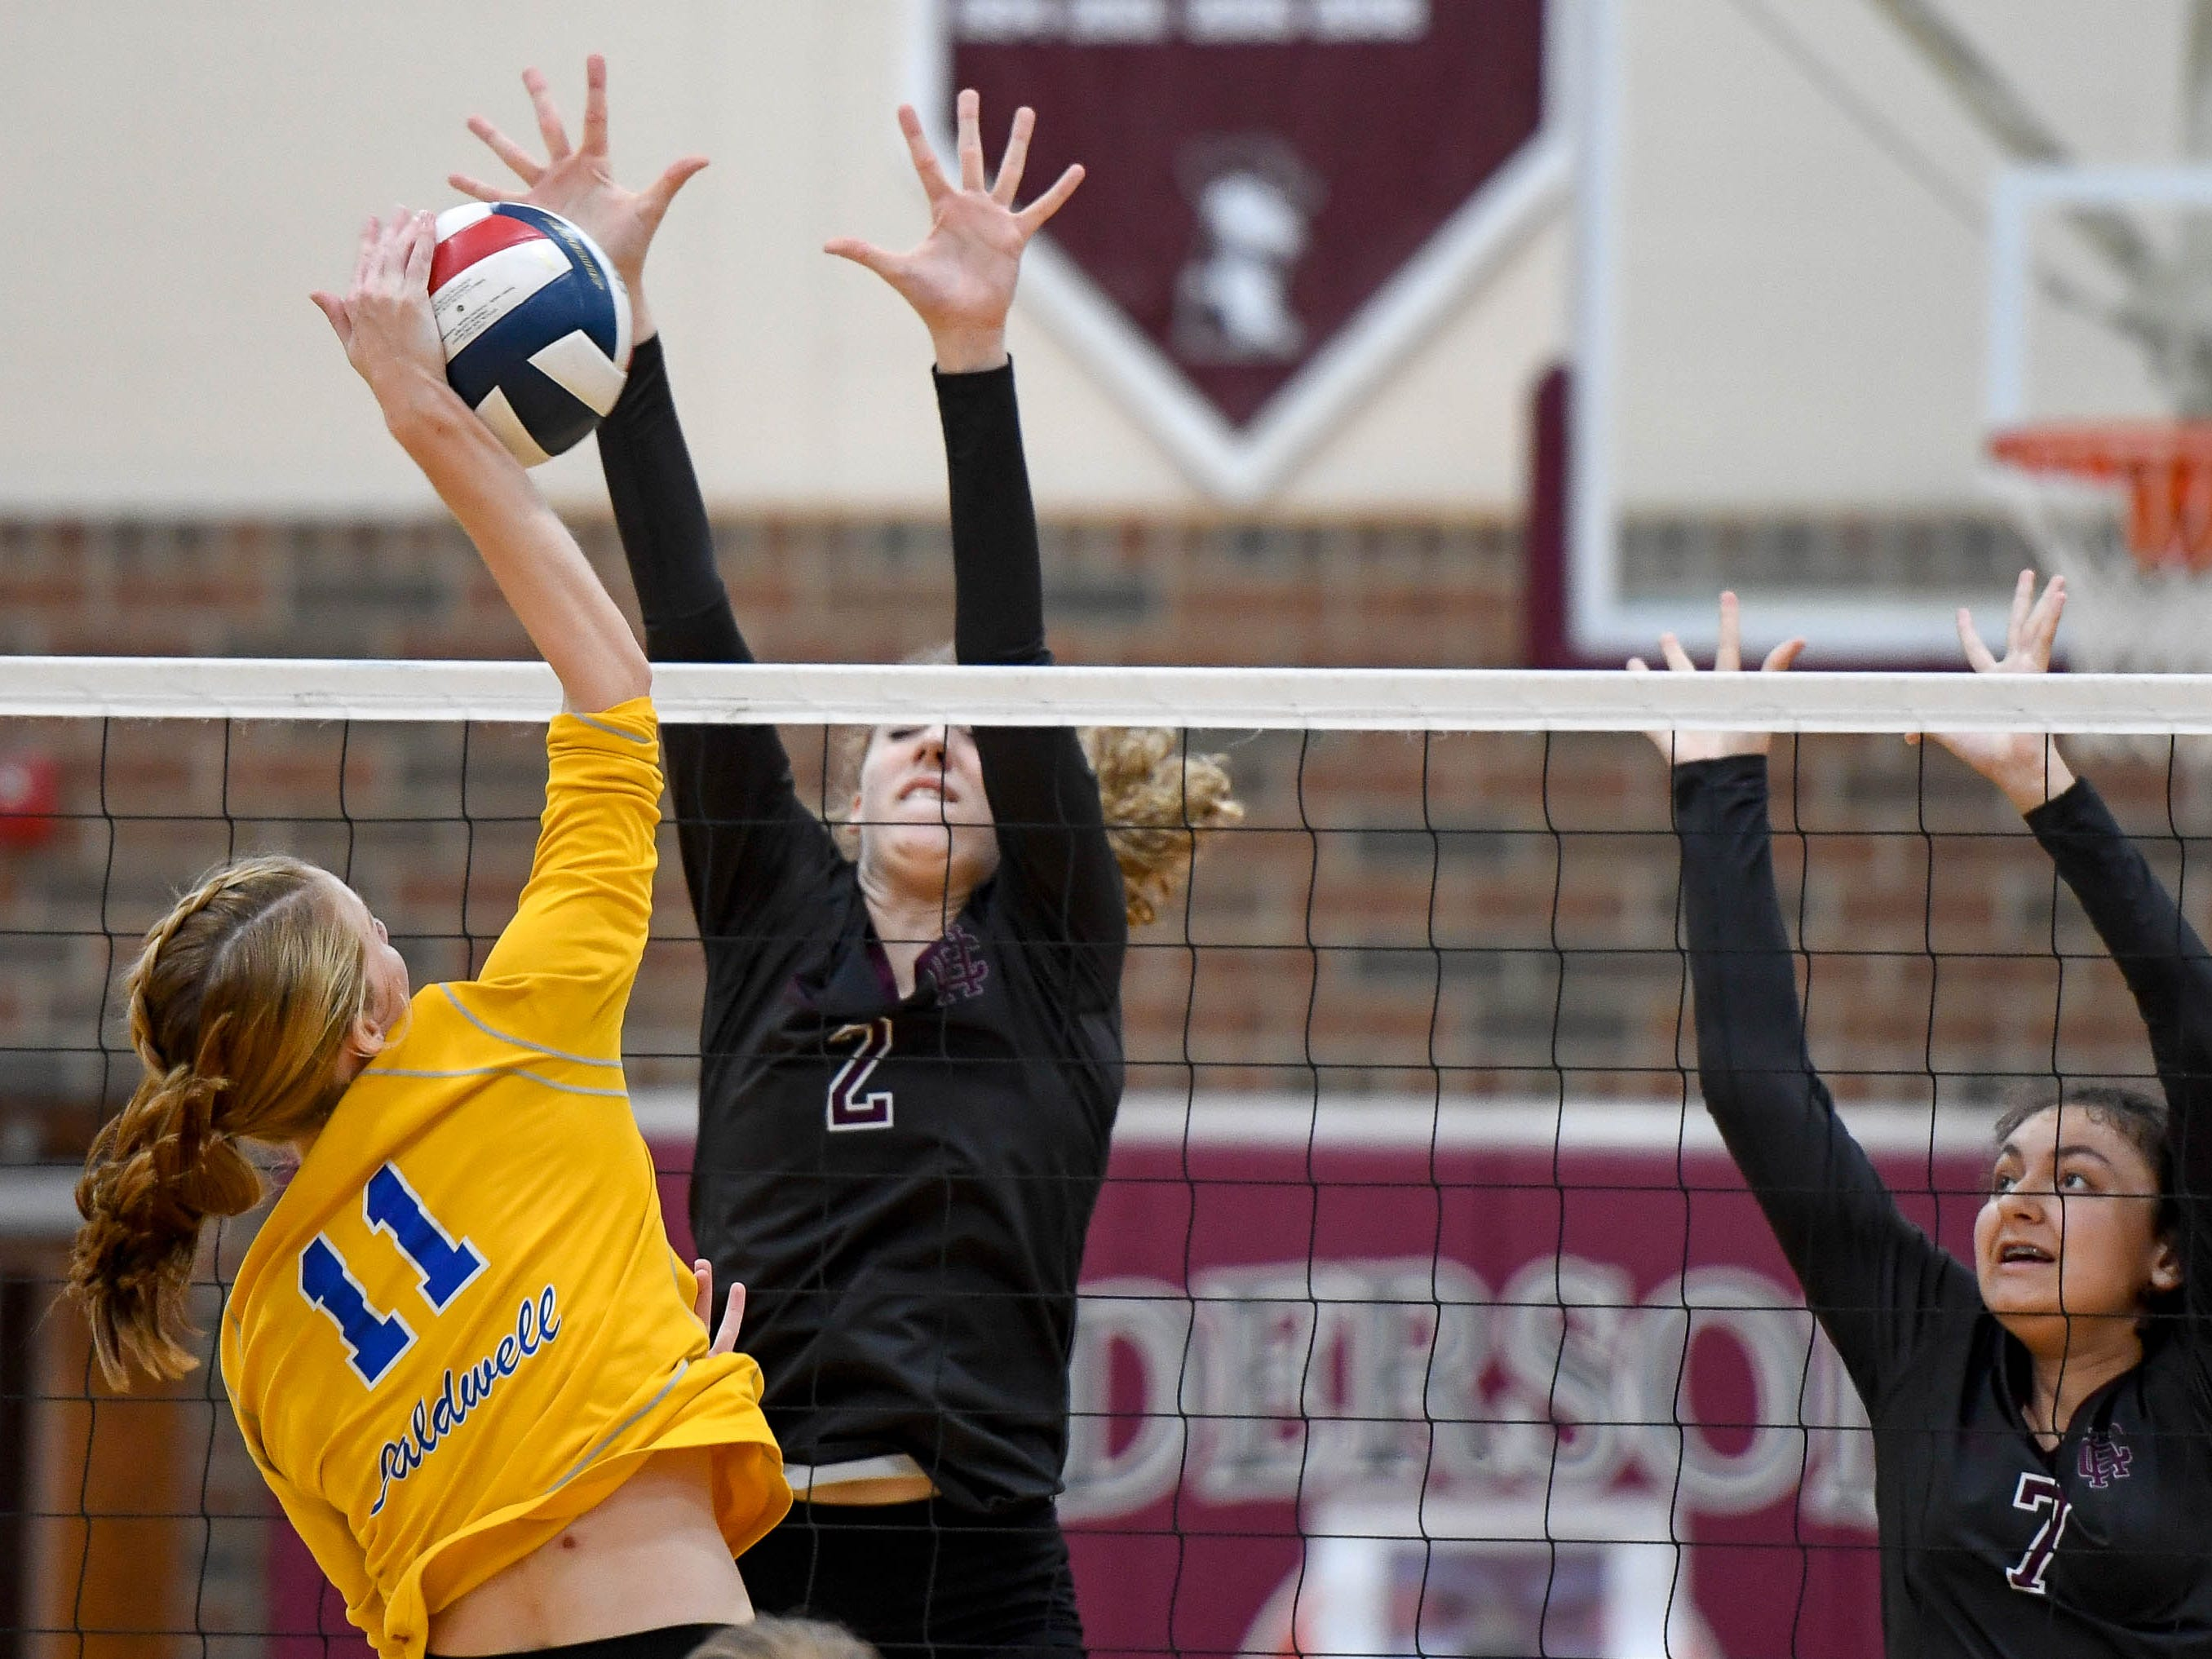 Henderson's Brooke Springer (2) and Henderson's Kaylee Stott (7) jump to block a shot from Caldwell's Abby Griggs (11) as the Henderson County Lady Colonels play the Caldwell County Lady Tigers at Colonel Gym Thursday, October  4, 2018.